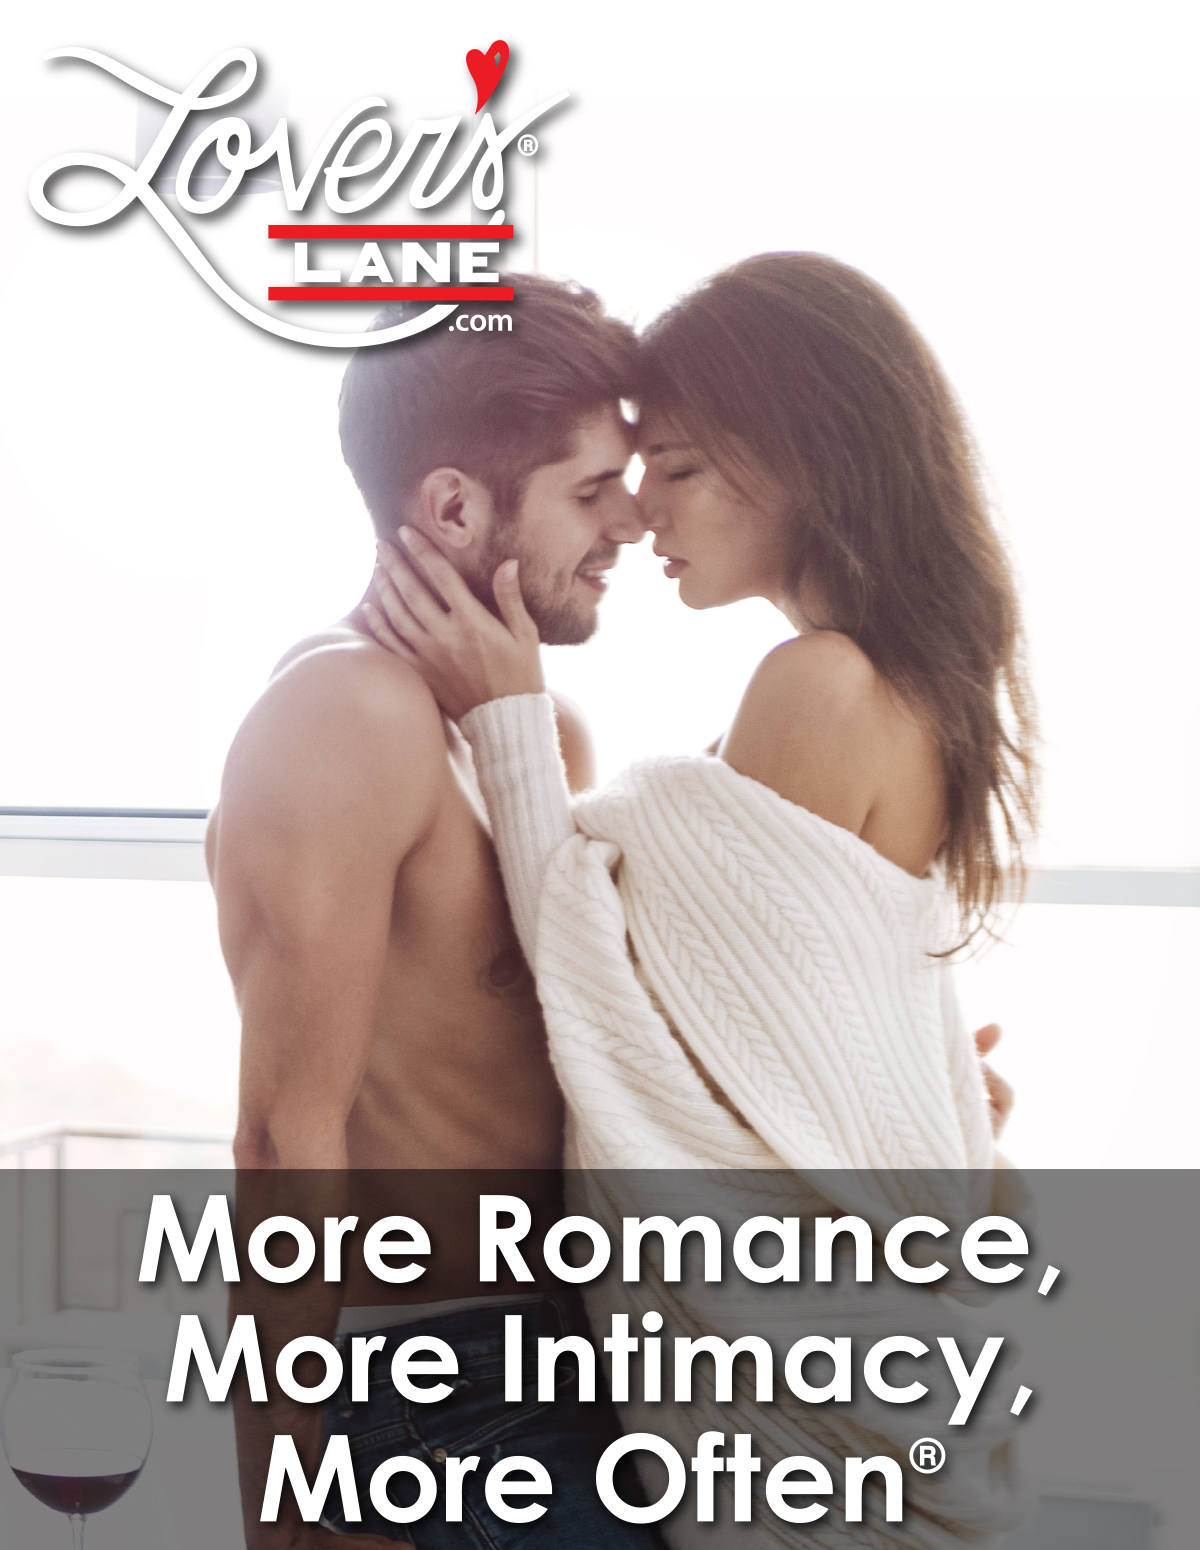 More Romance, More Intimacy, More Often - LoversLane.com